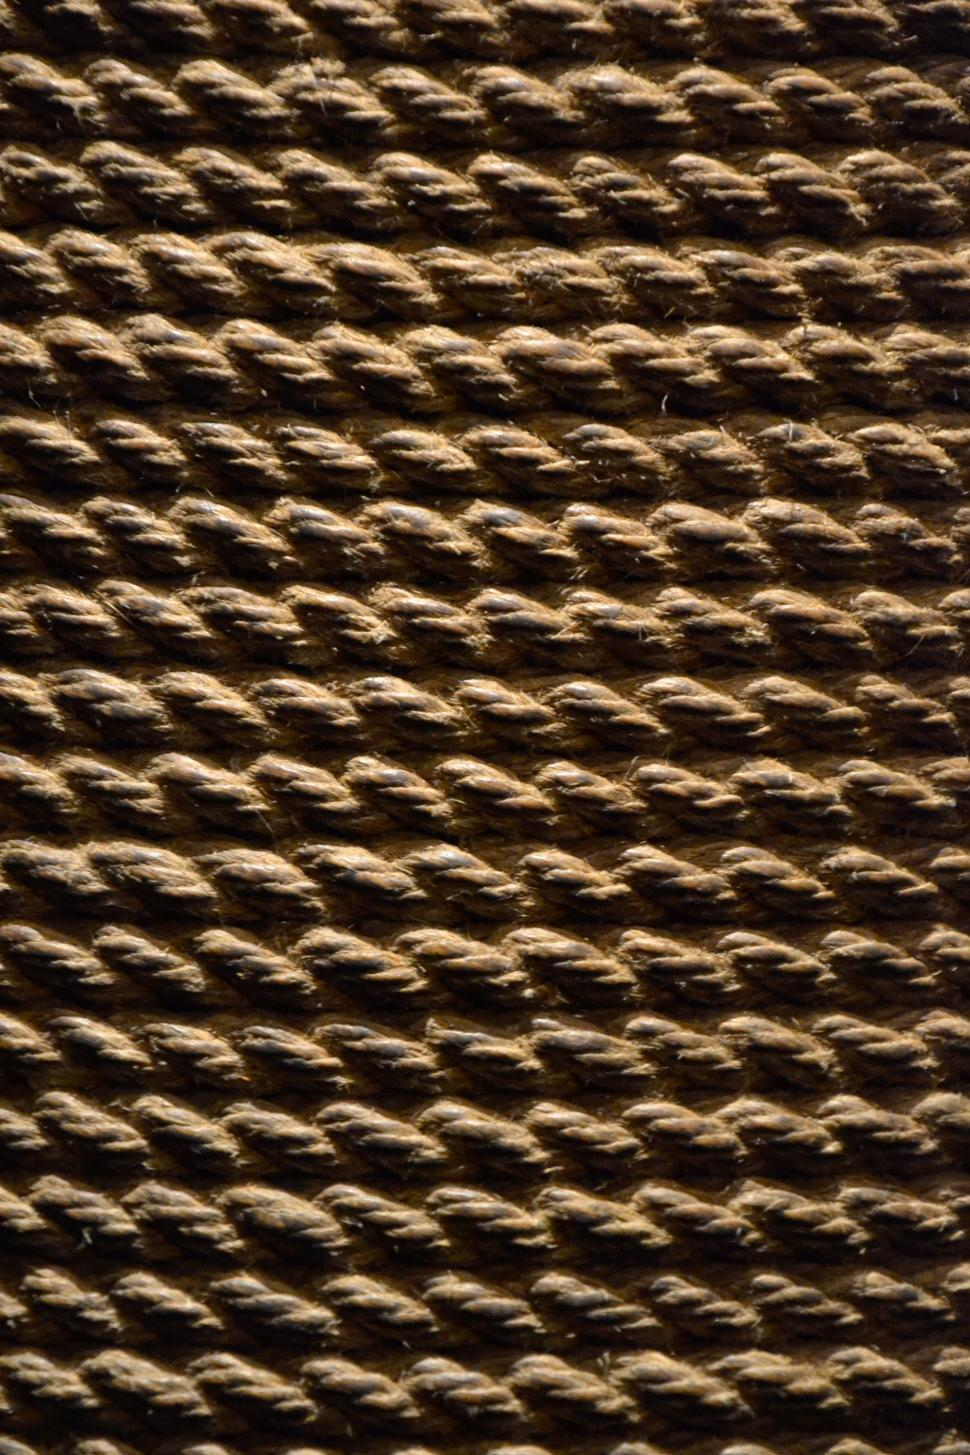 Download Free Stock HD Photo of Rope texture  Online